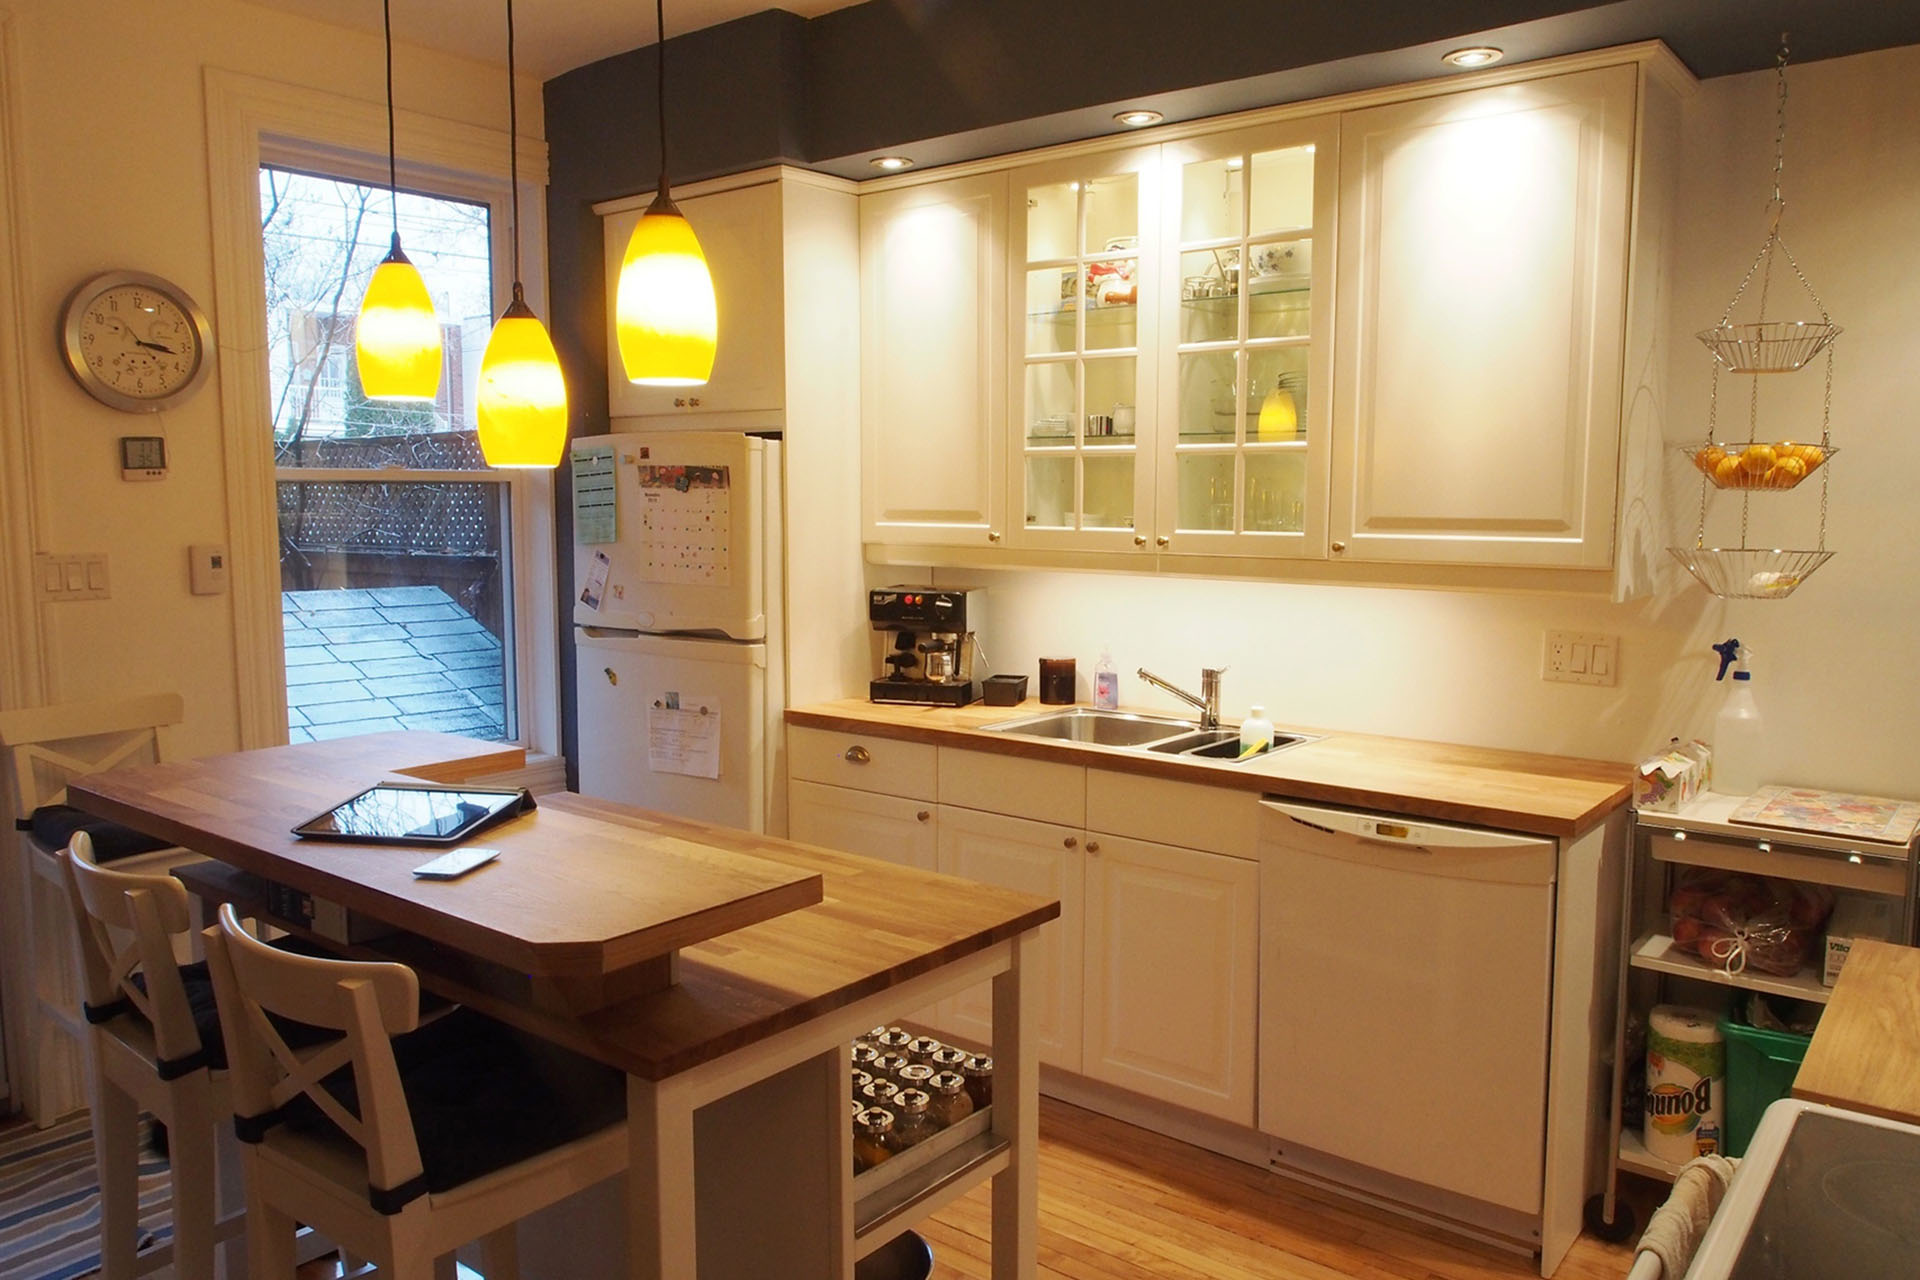 Got Hygge 3 Ikea Kitchens Designed For The Winter